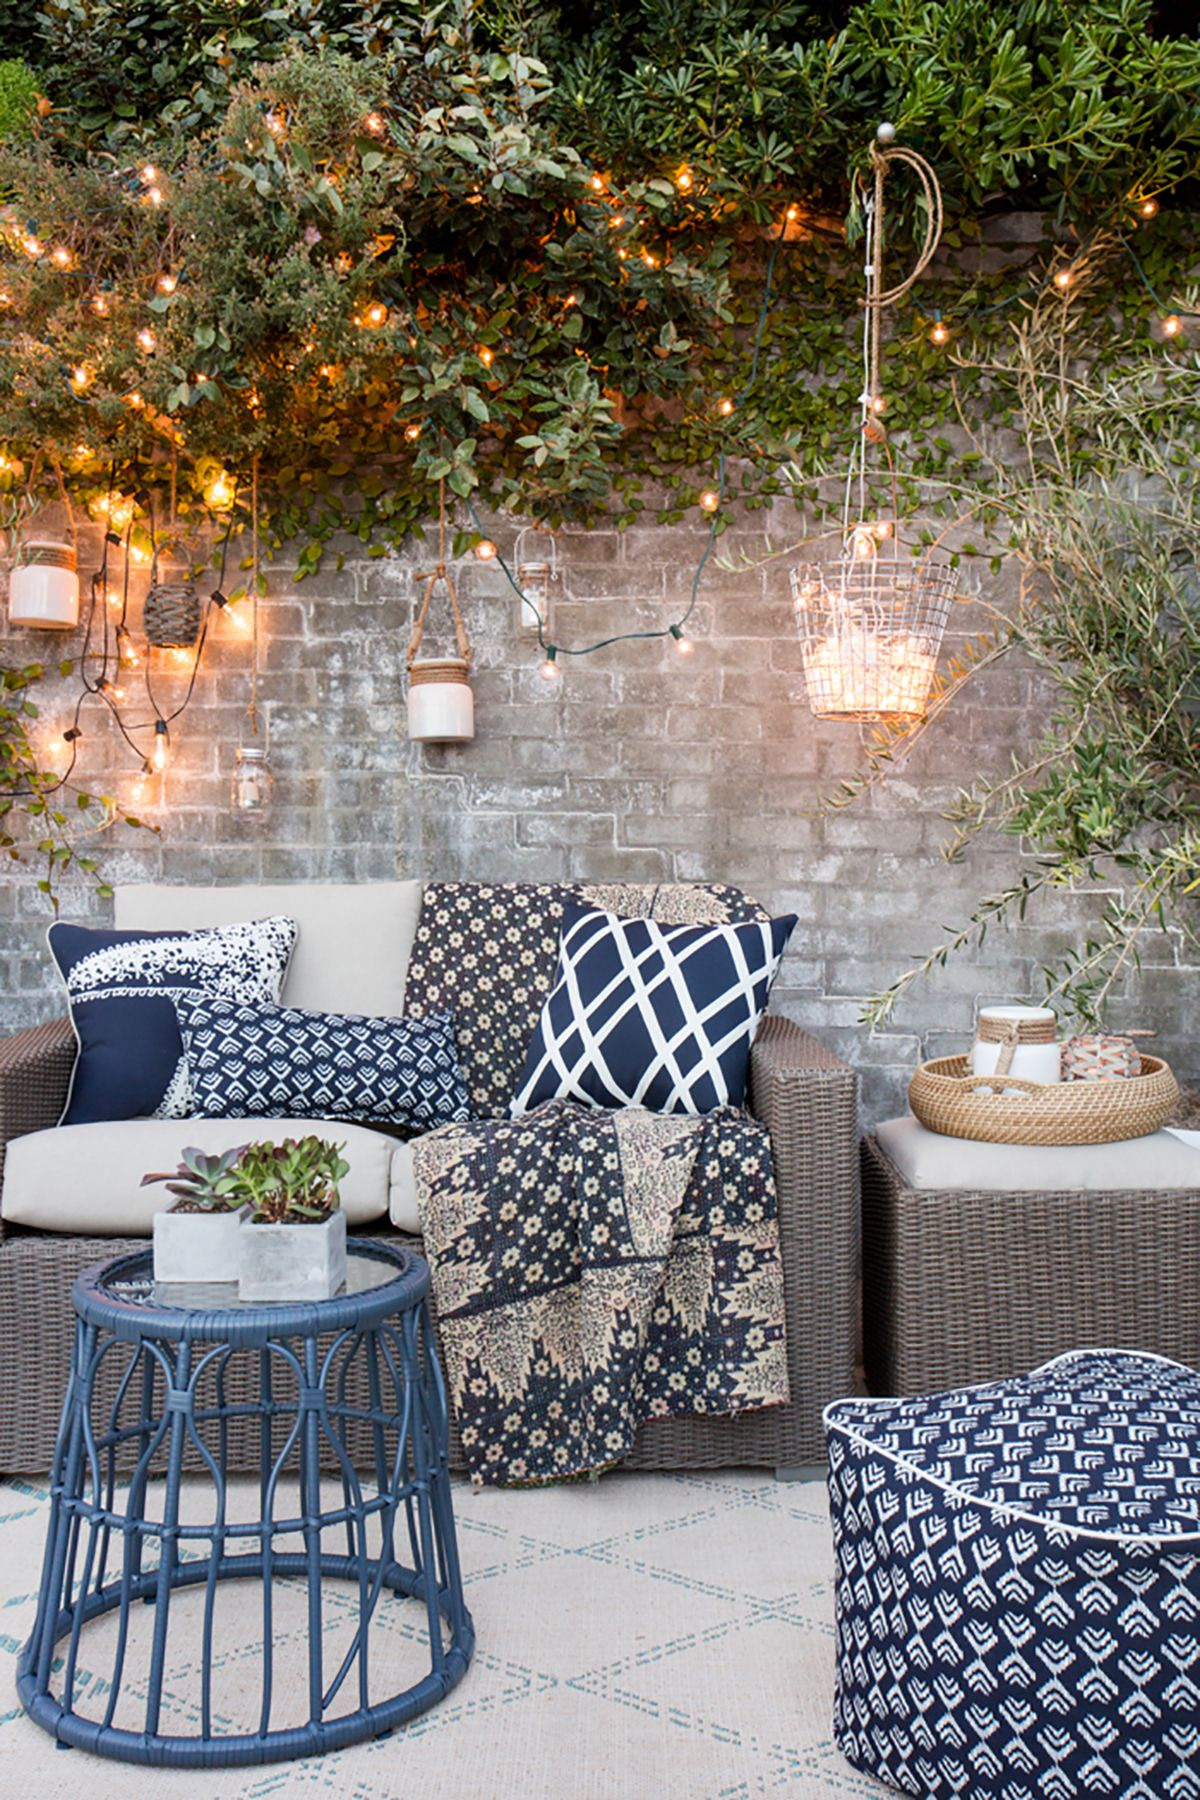 Courtesy Of Style By Emily Henderson. String Lights ...